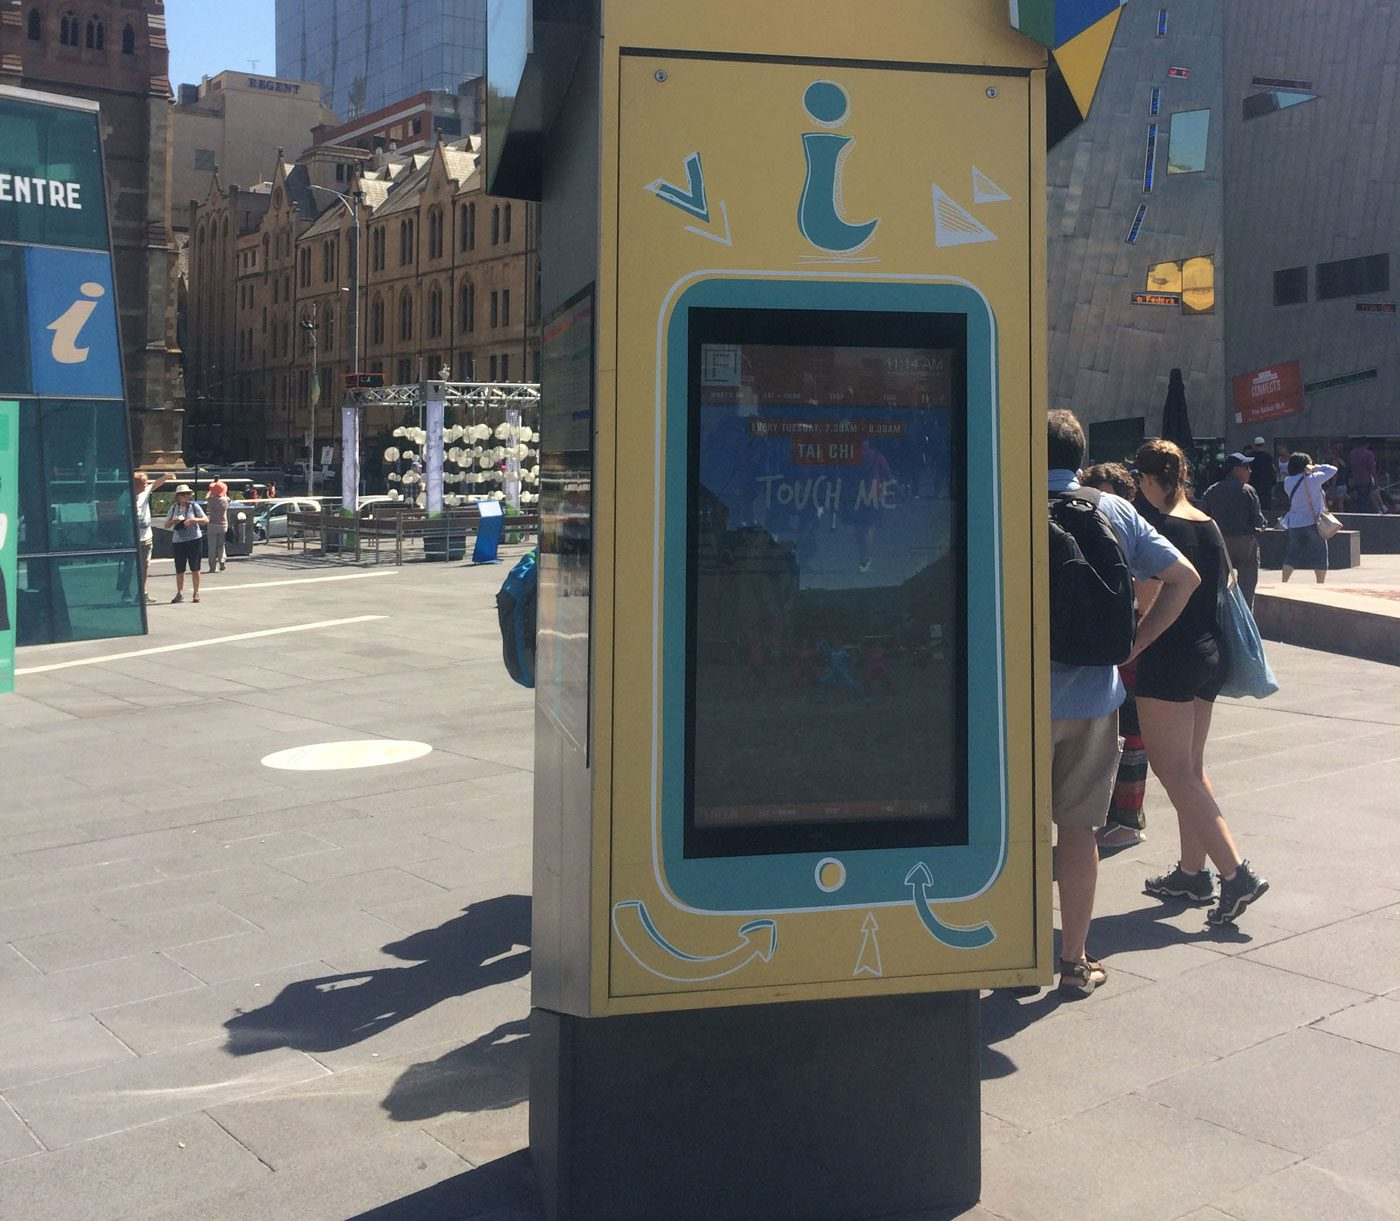 Metrospec Touch Screen Outdoor LCD Displays (Kiosk/Bollard) being used in Melbourne's Federation Square